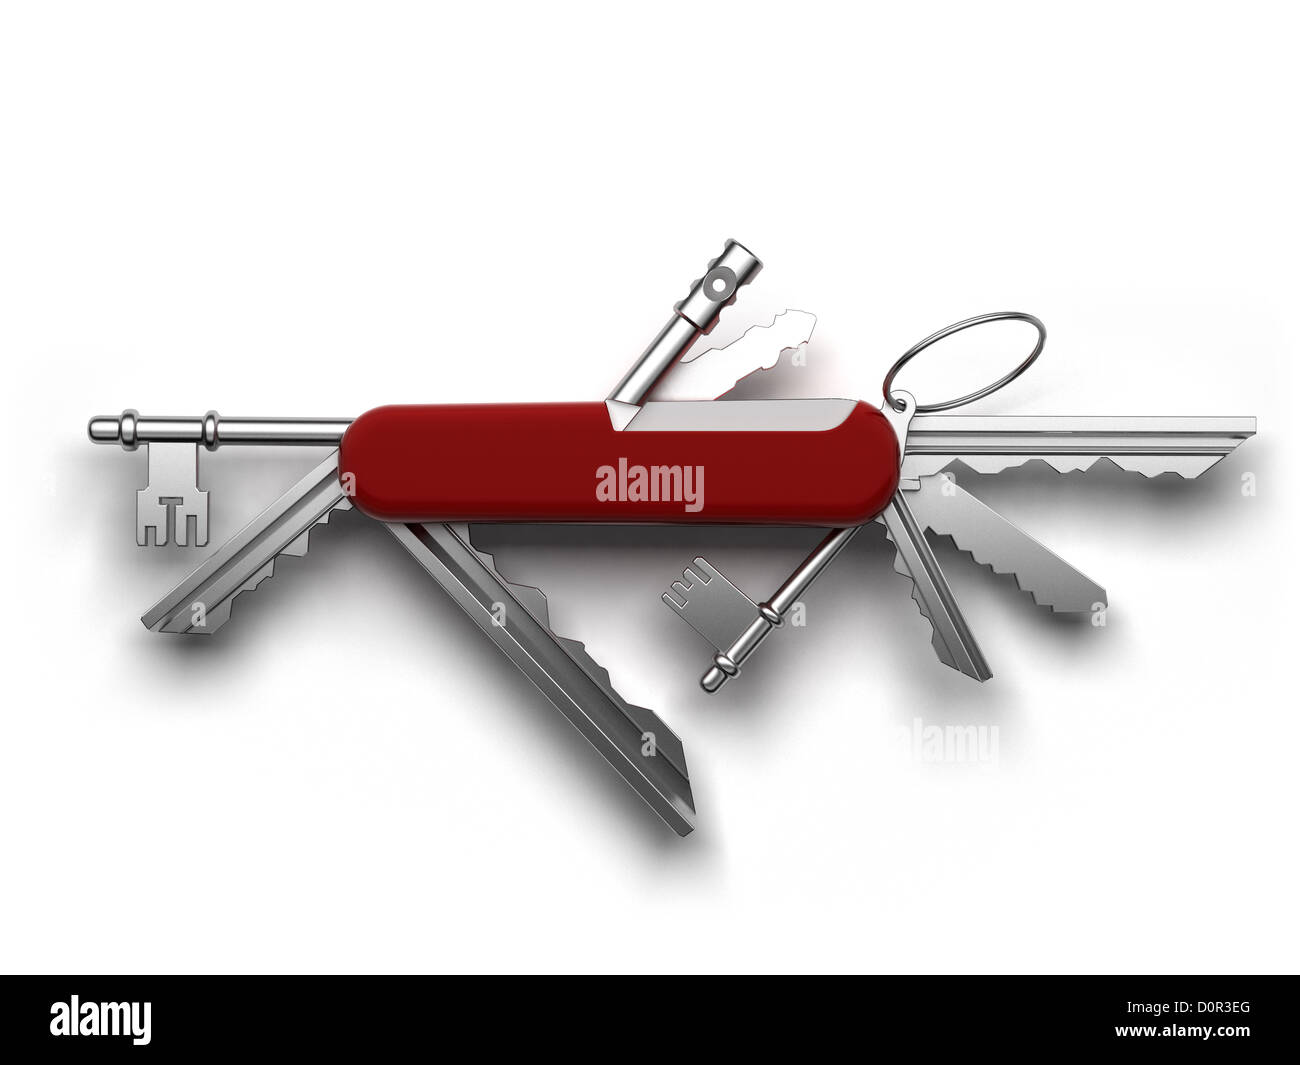 Universal tool for opening all the locks - Stock Image